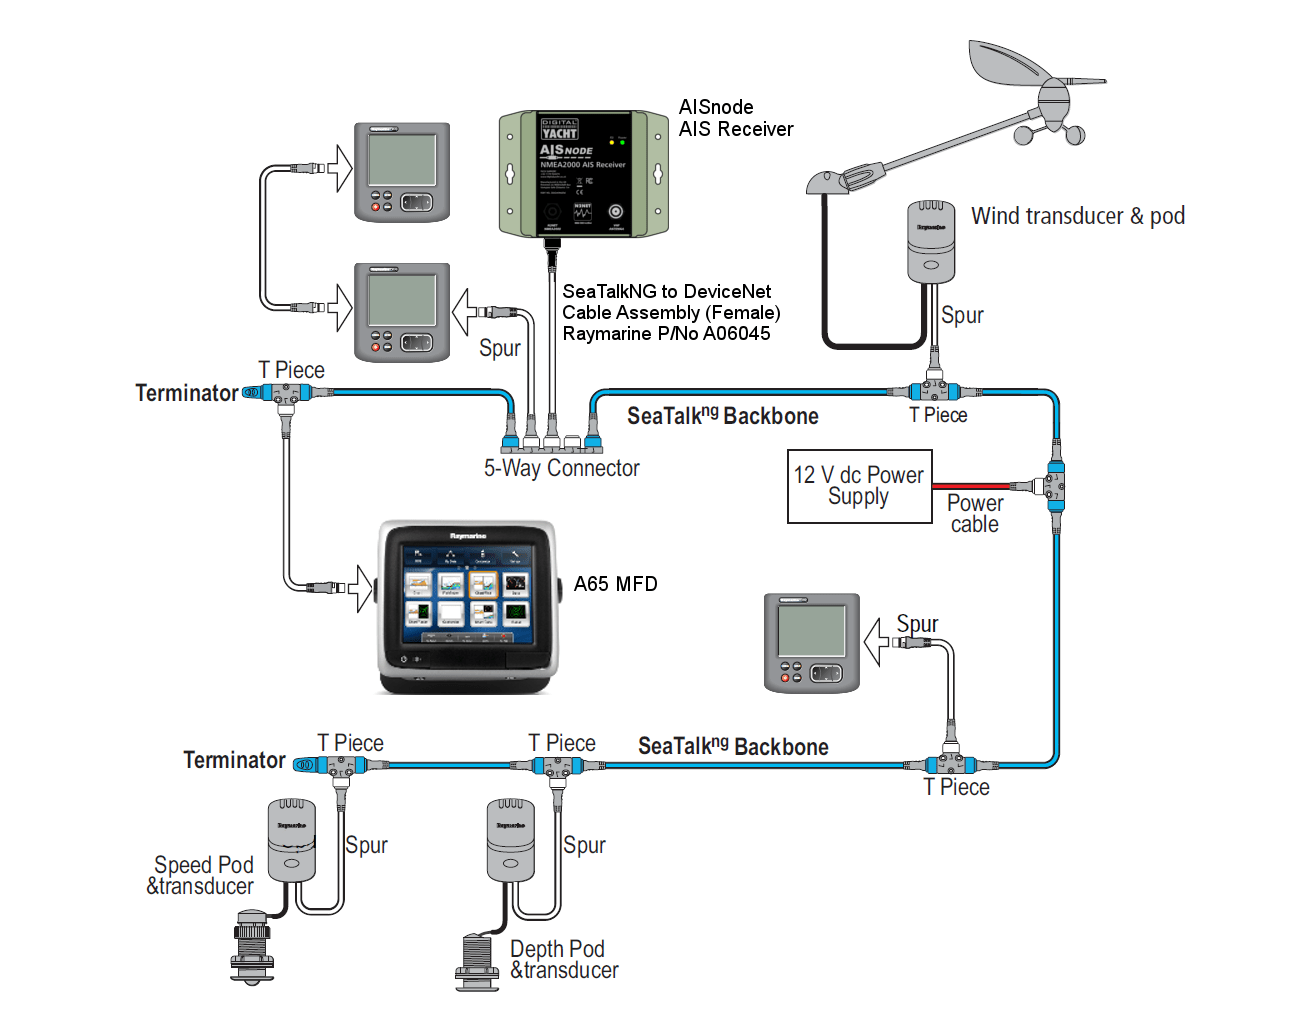 Ais Gps Wiring Diagram - Everything About Wiring Diagram • S Goldstar Gps Wiring Diagram on goldstar gps rocket, gold diagram, active fuel management 5 3 diagram, eonon double din wire diagram, mounting cb radio antenna diagram, goldstar gps plug, garmin gpsmap circuit diagram, sailplane diagram,